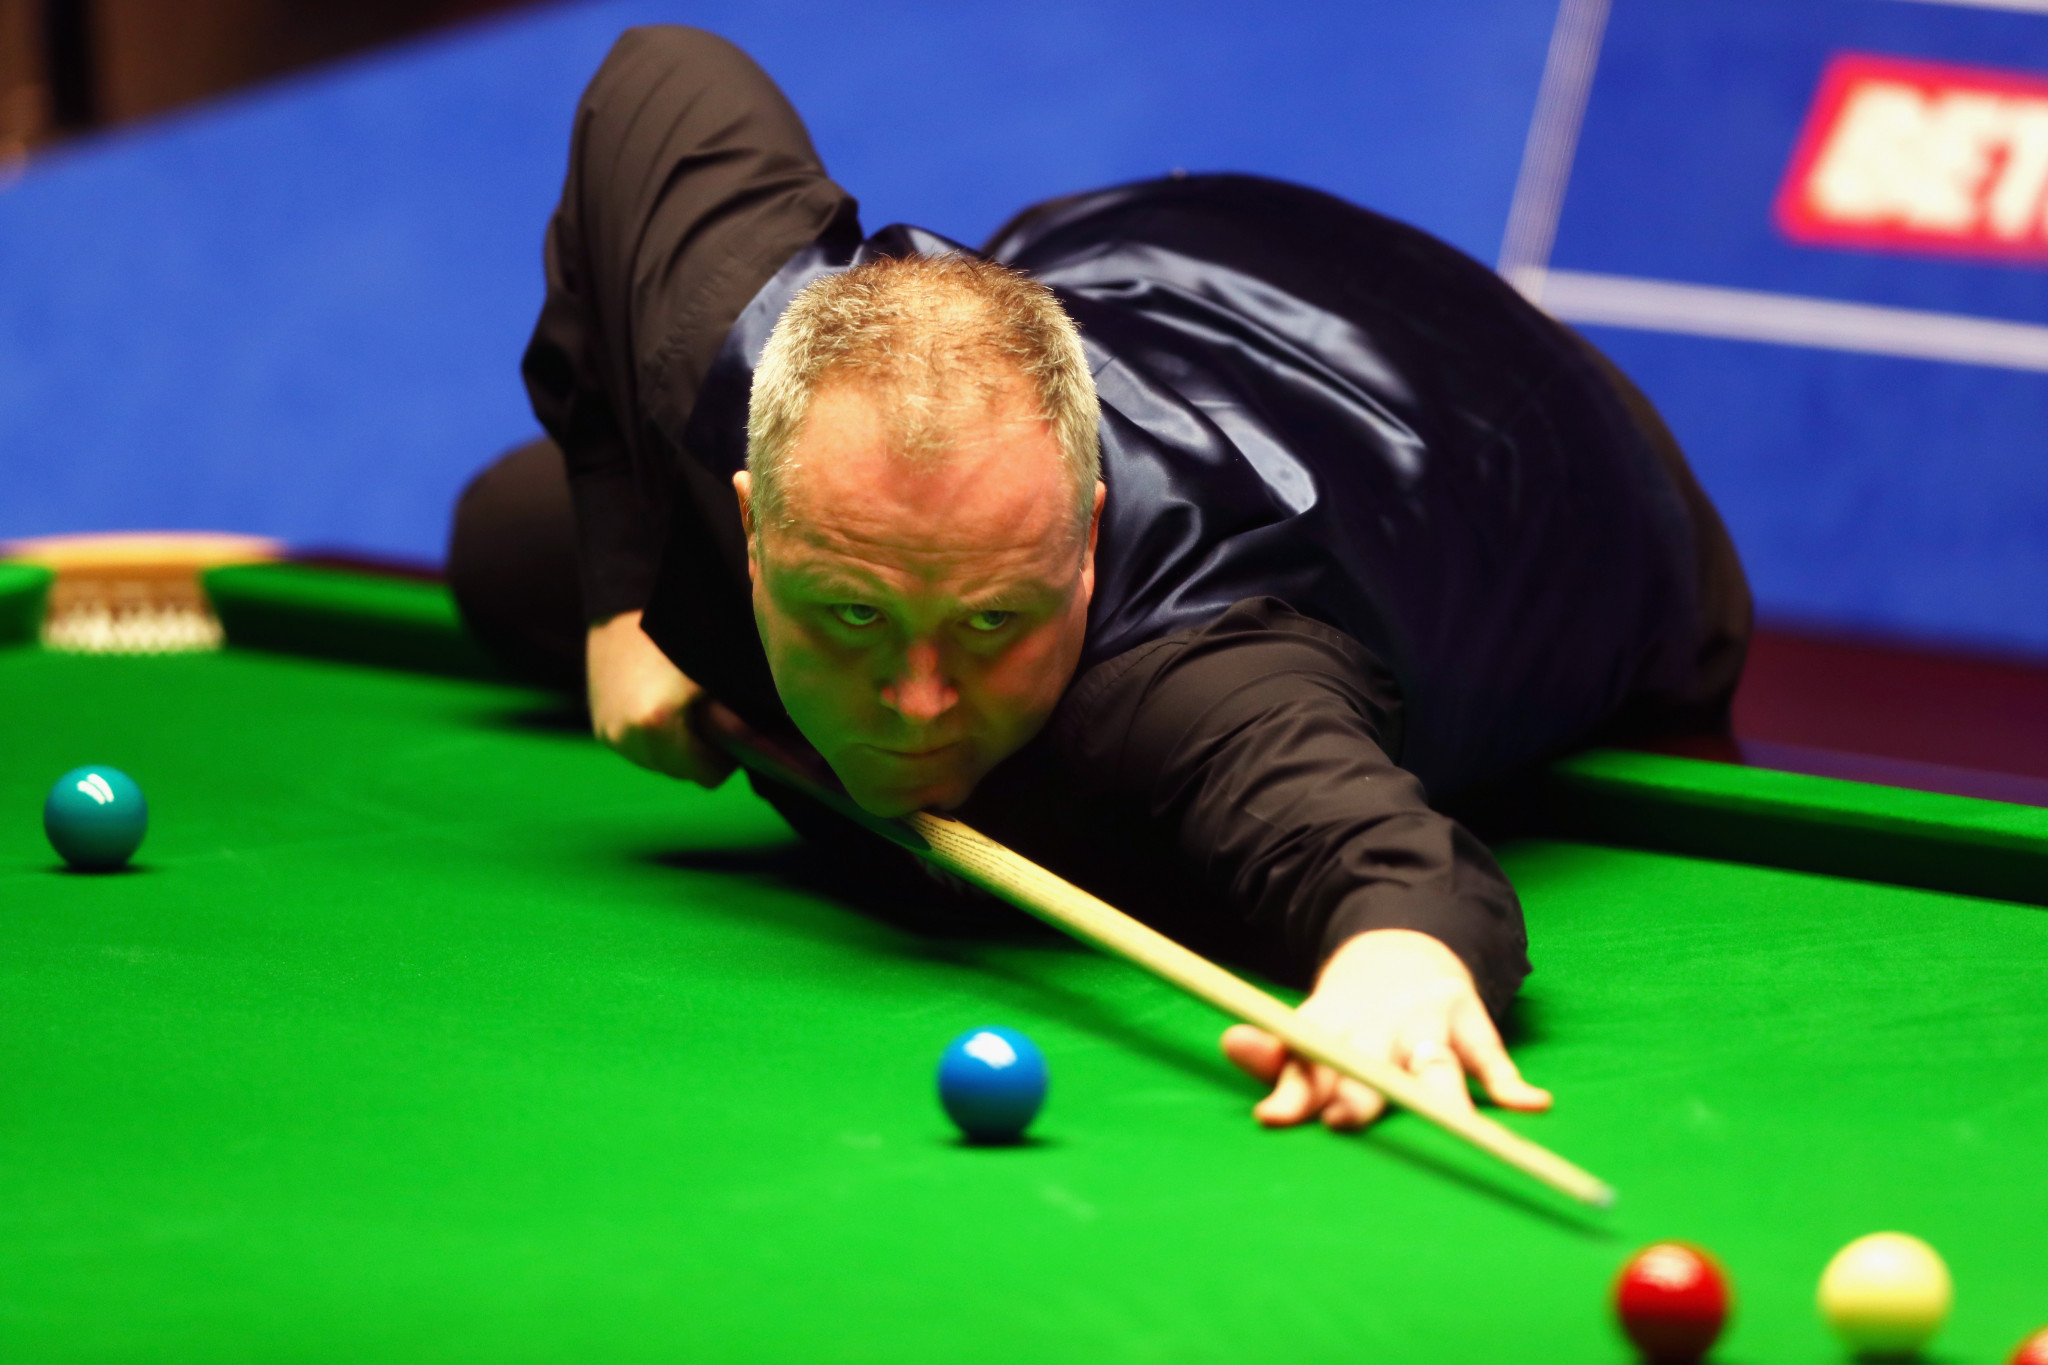 John Higgins has won the World Snooker Championship four times ©Getty Images